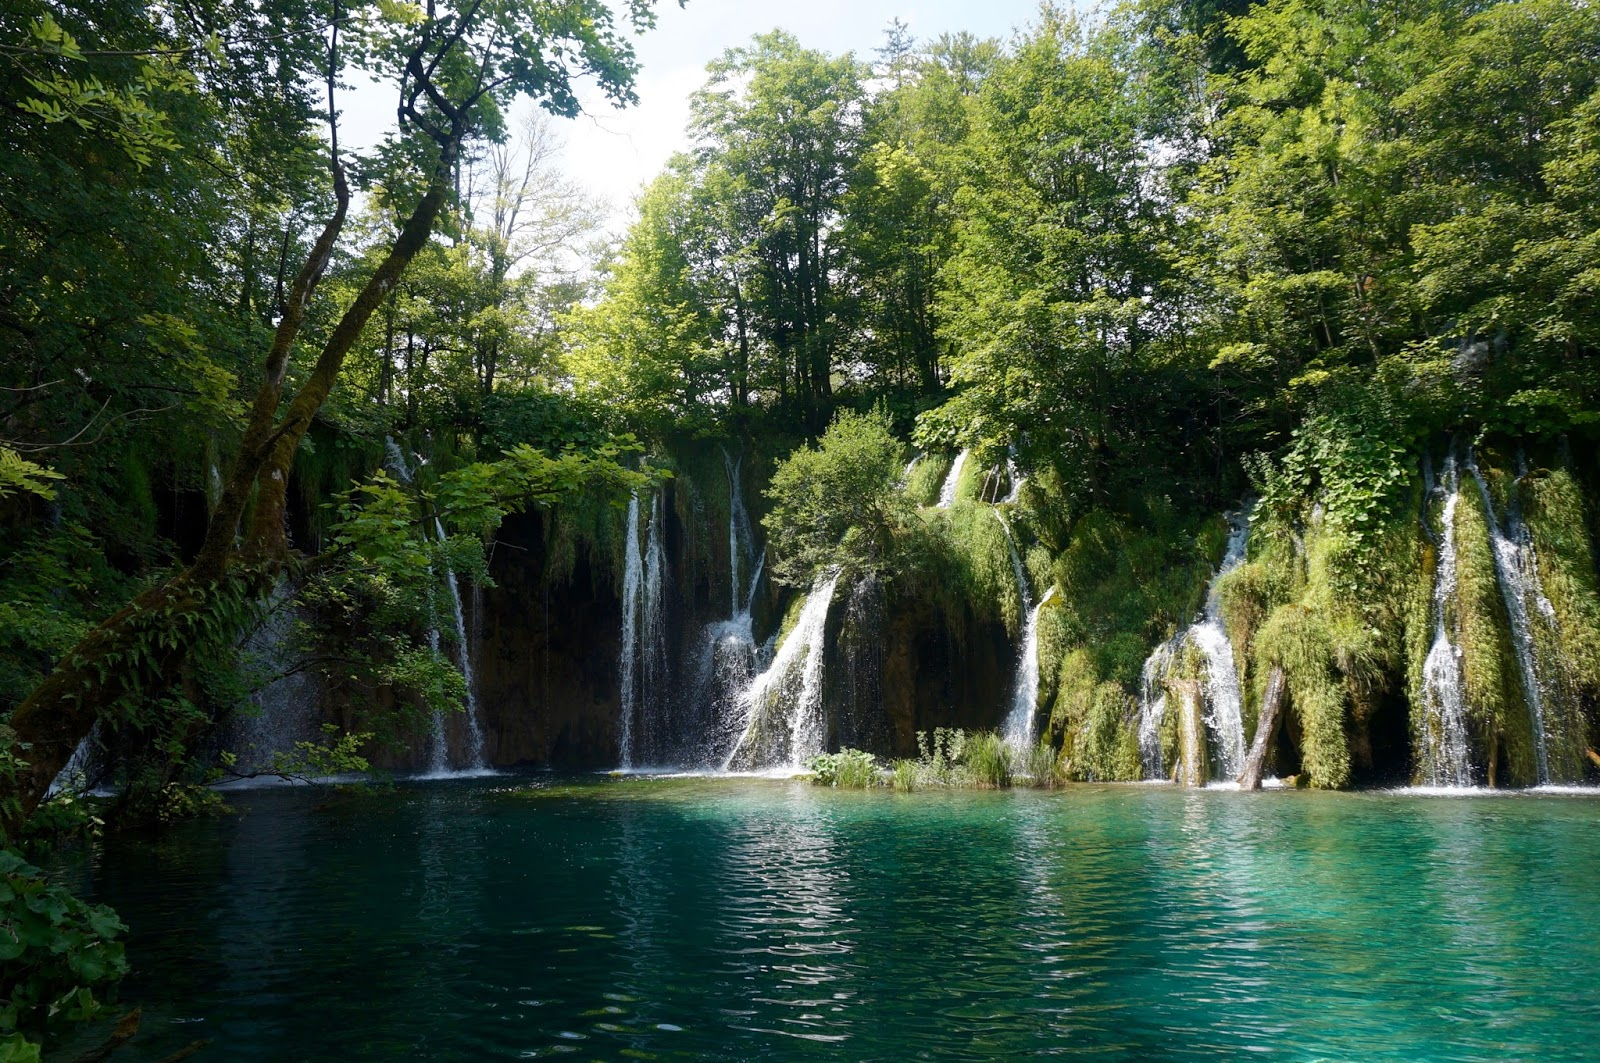 WATERFALLS PLITVICE LAKES NATIONAL PARK, CROATIA